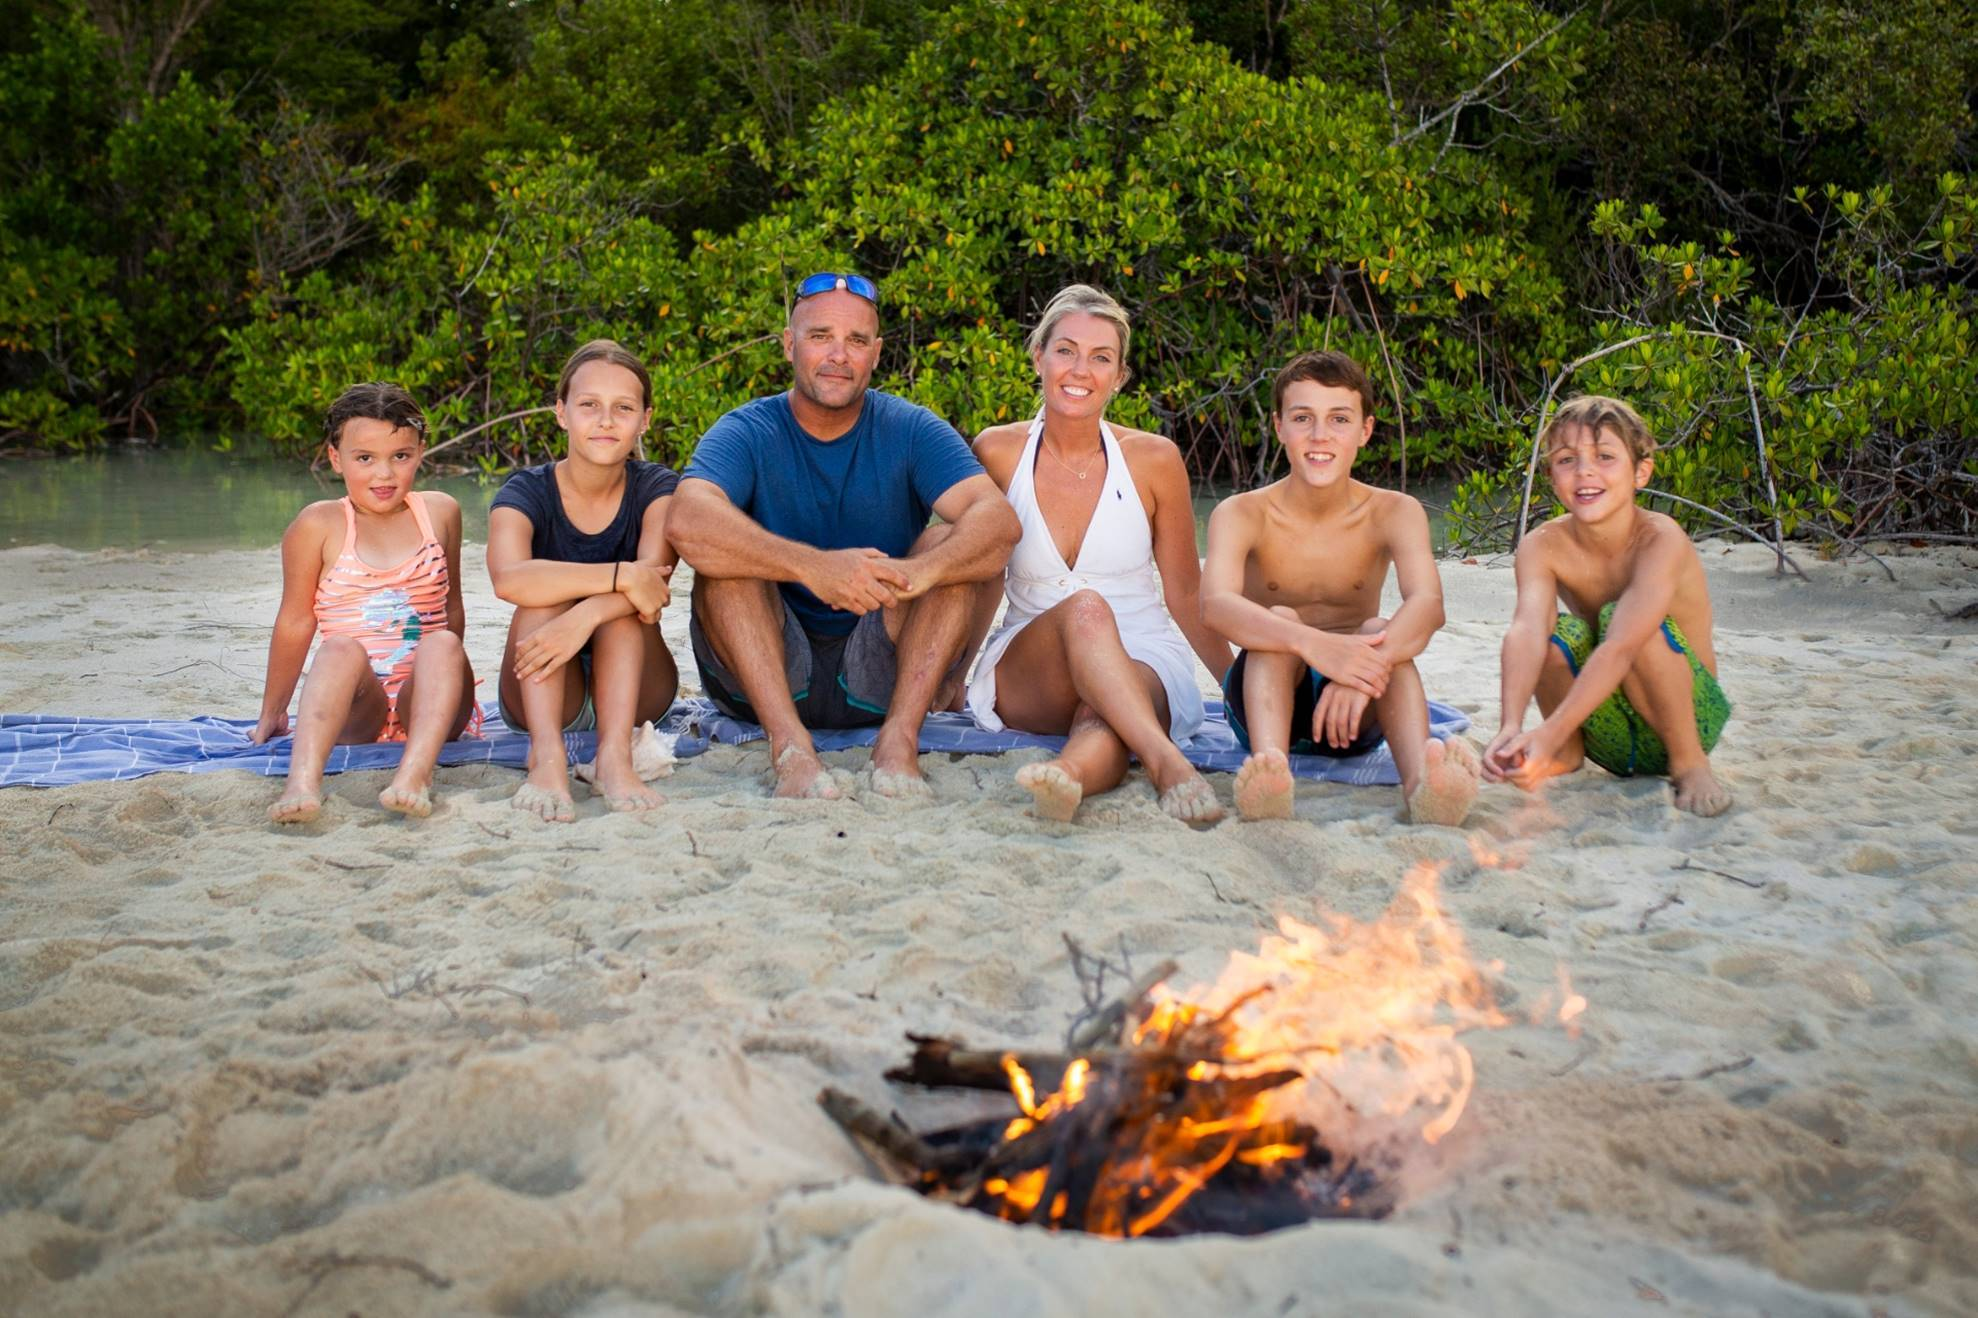 The Baeumler family from HGTV's 'Renovation Island' sitting around a campfire on the beach